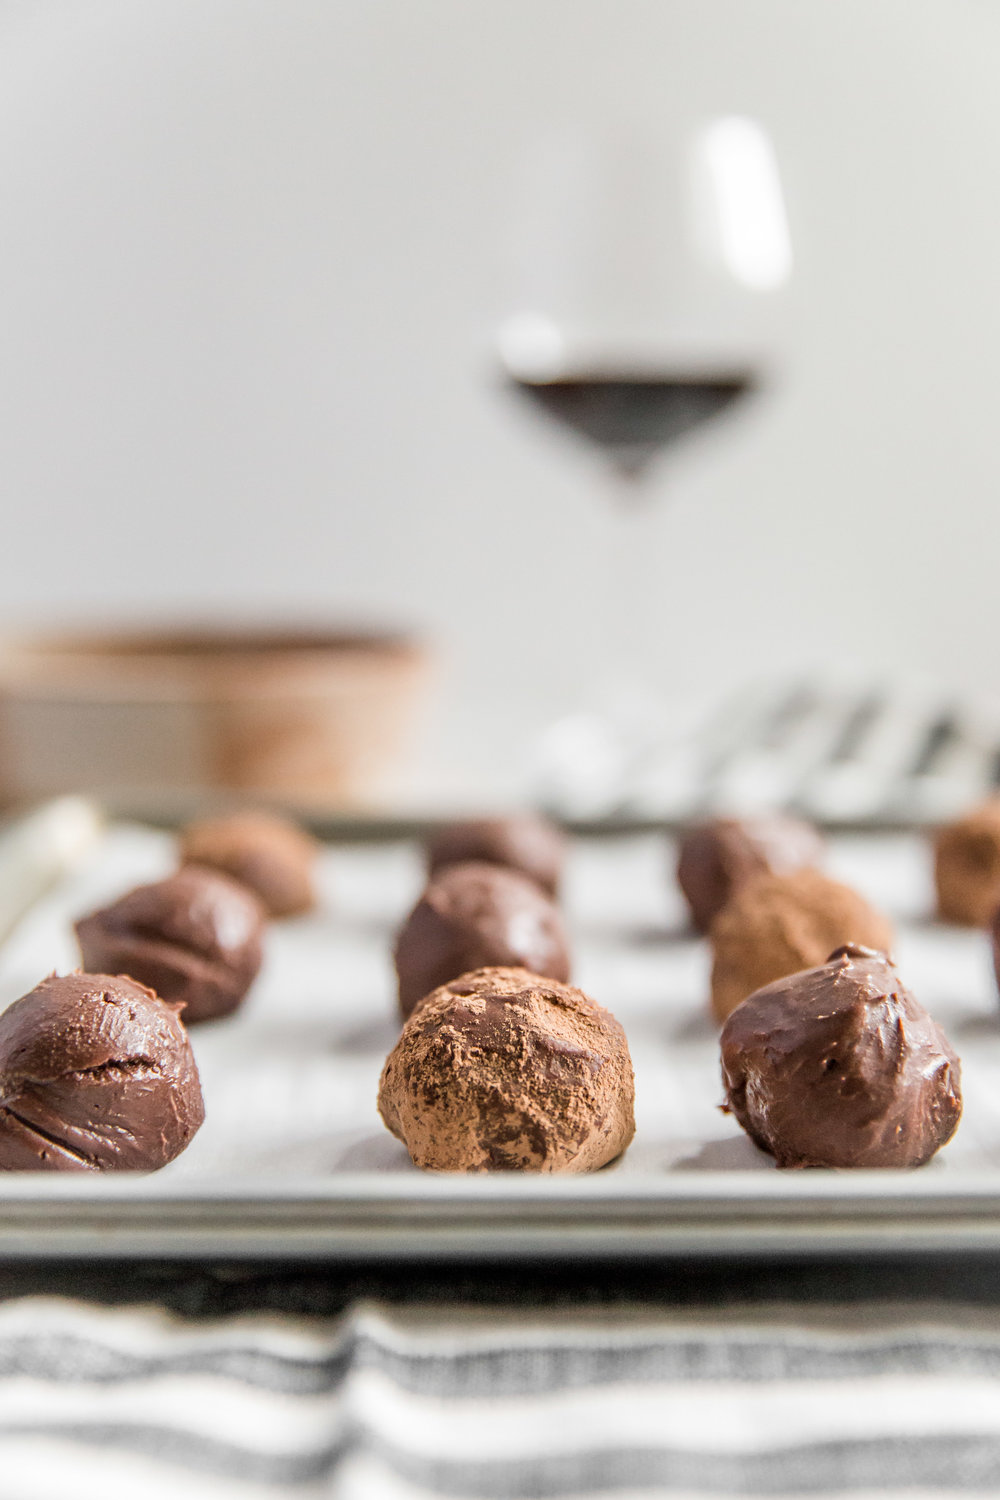 chocolate-wine-truffles-6.jpg